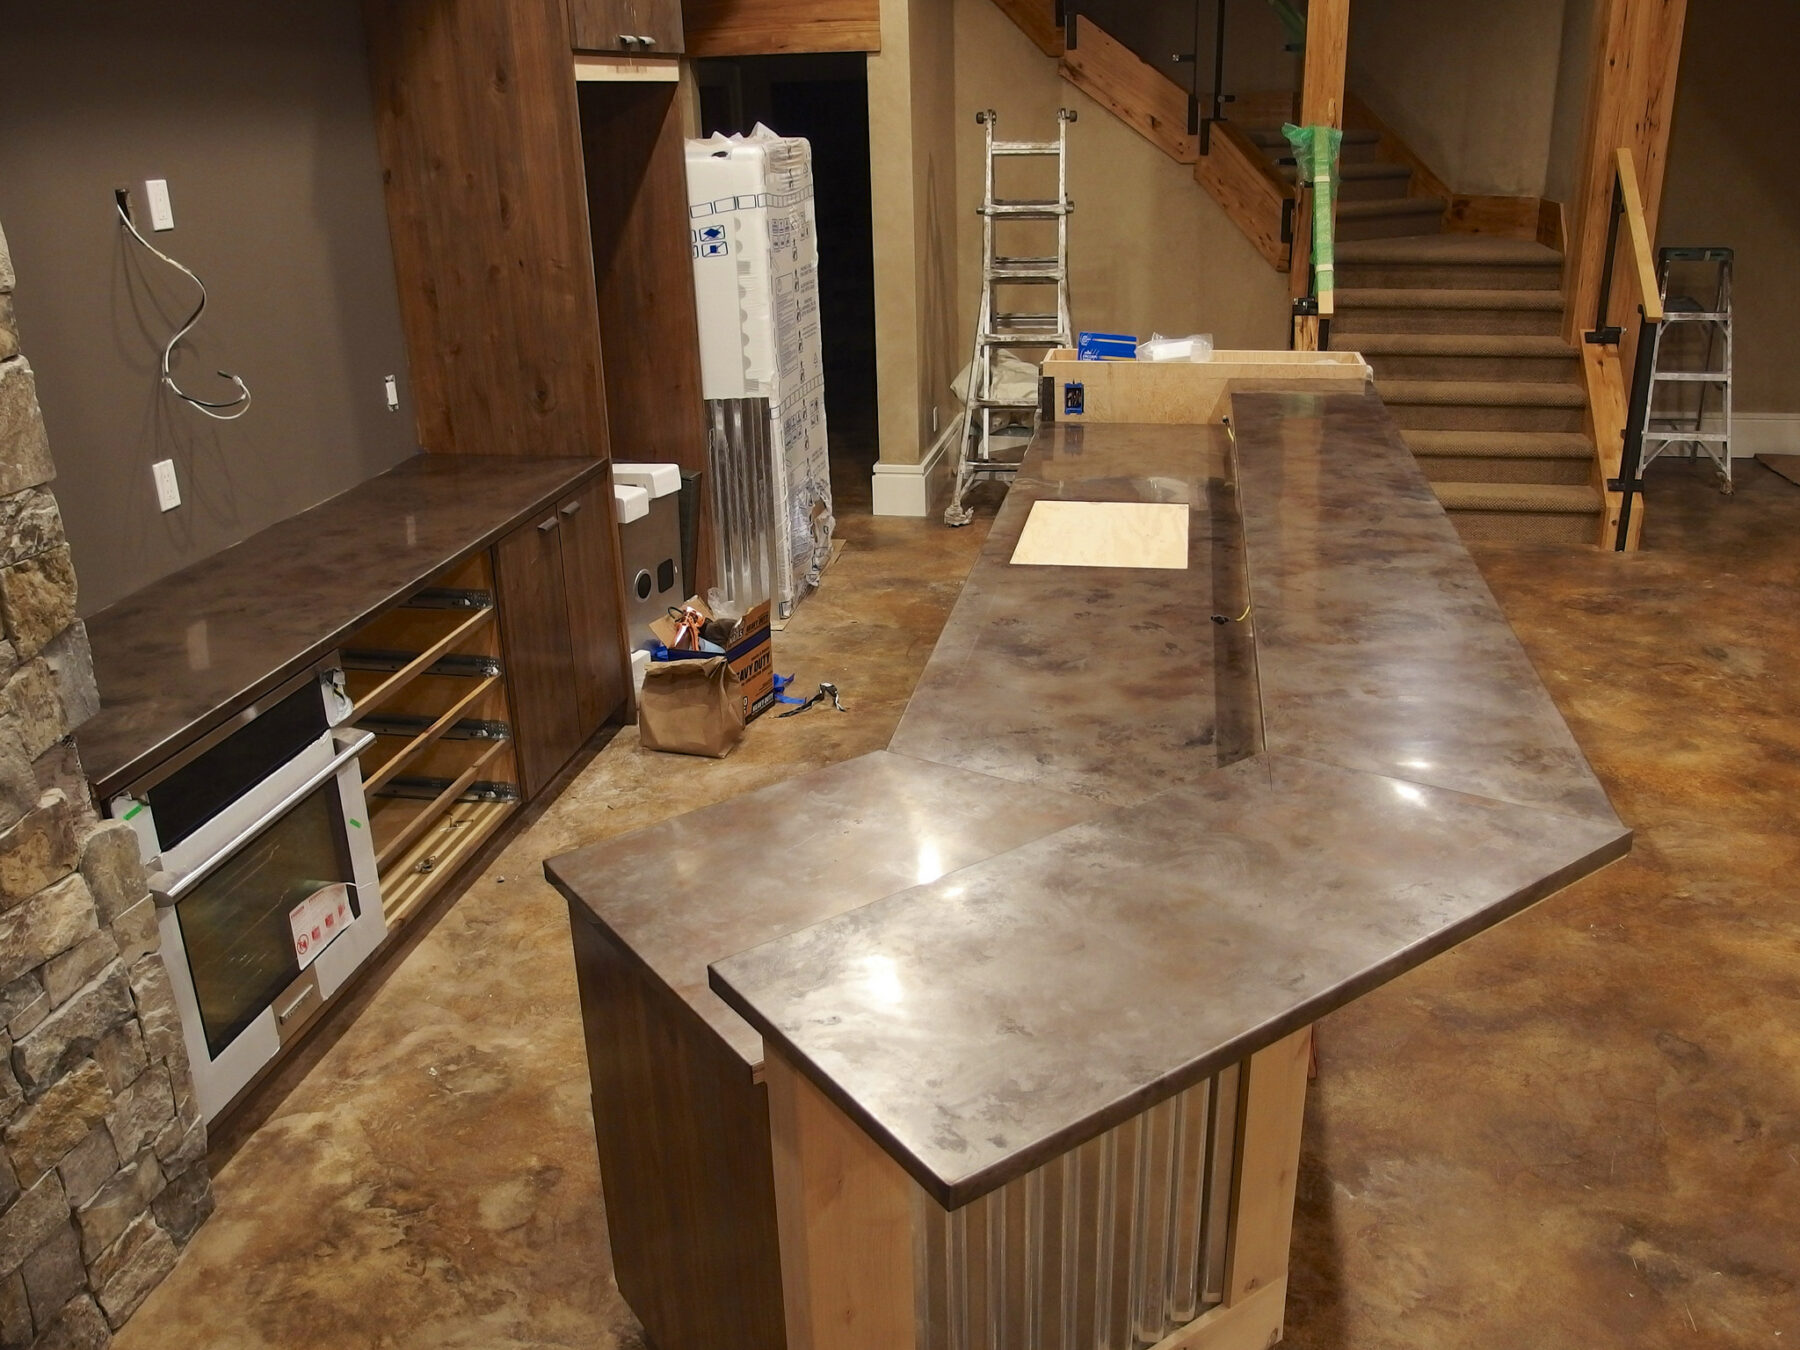 Stainless Countertop Volcanic Stainless Steel Countertops Milo S Art Metal